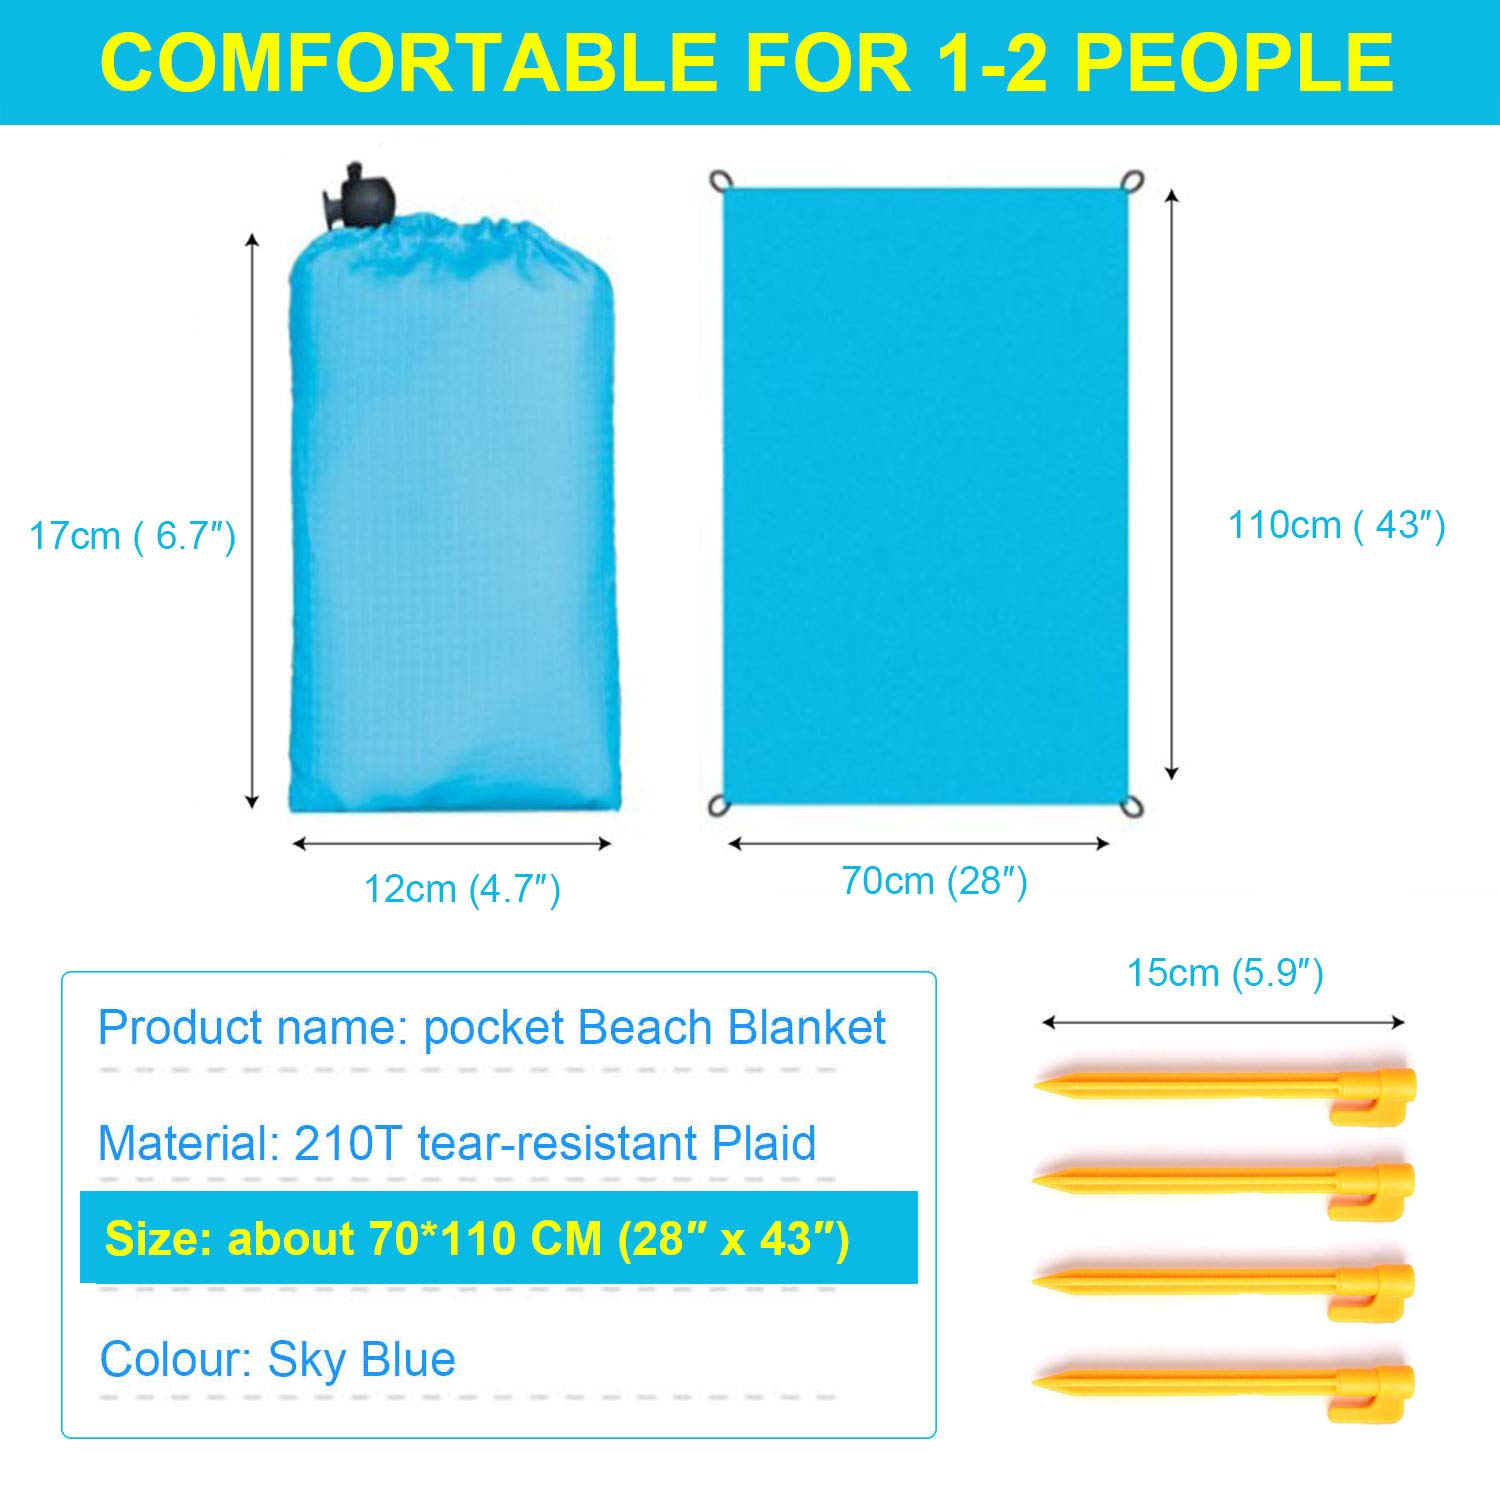 ZCINT Packable Pocket Blanket Beach Small 28 x 43 Inch with 4 Stakes, Waterproof Outdoor Hiking Tarp Cover, Ripstop Nylon Compact Ground Mat for Camping, Travel, Picnic